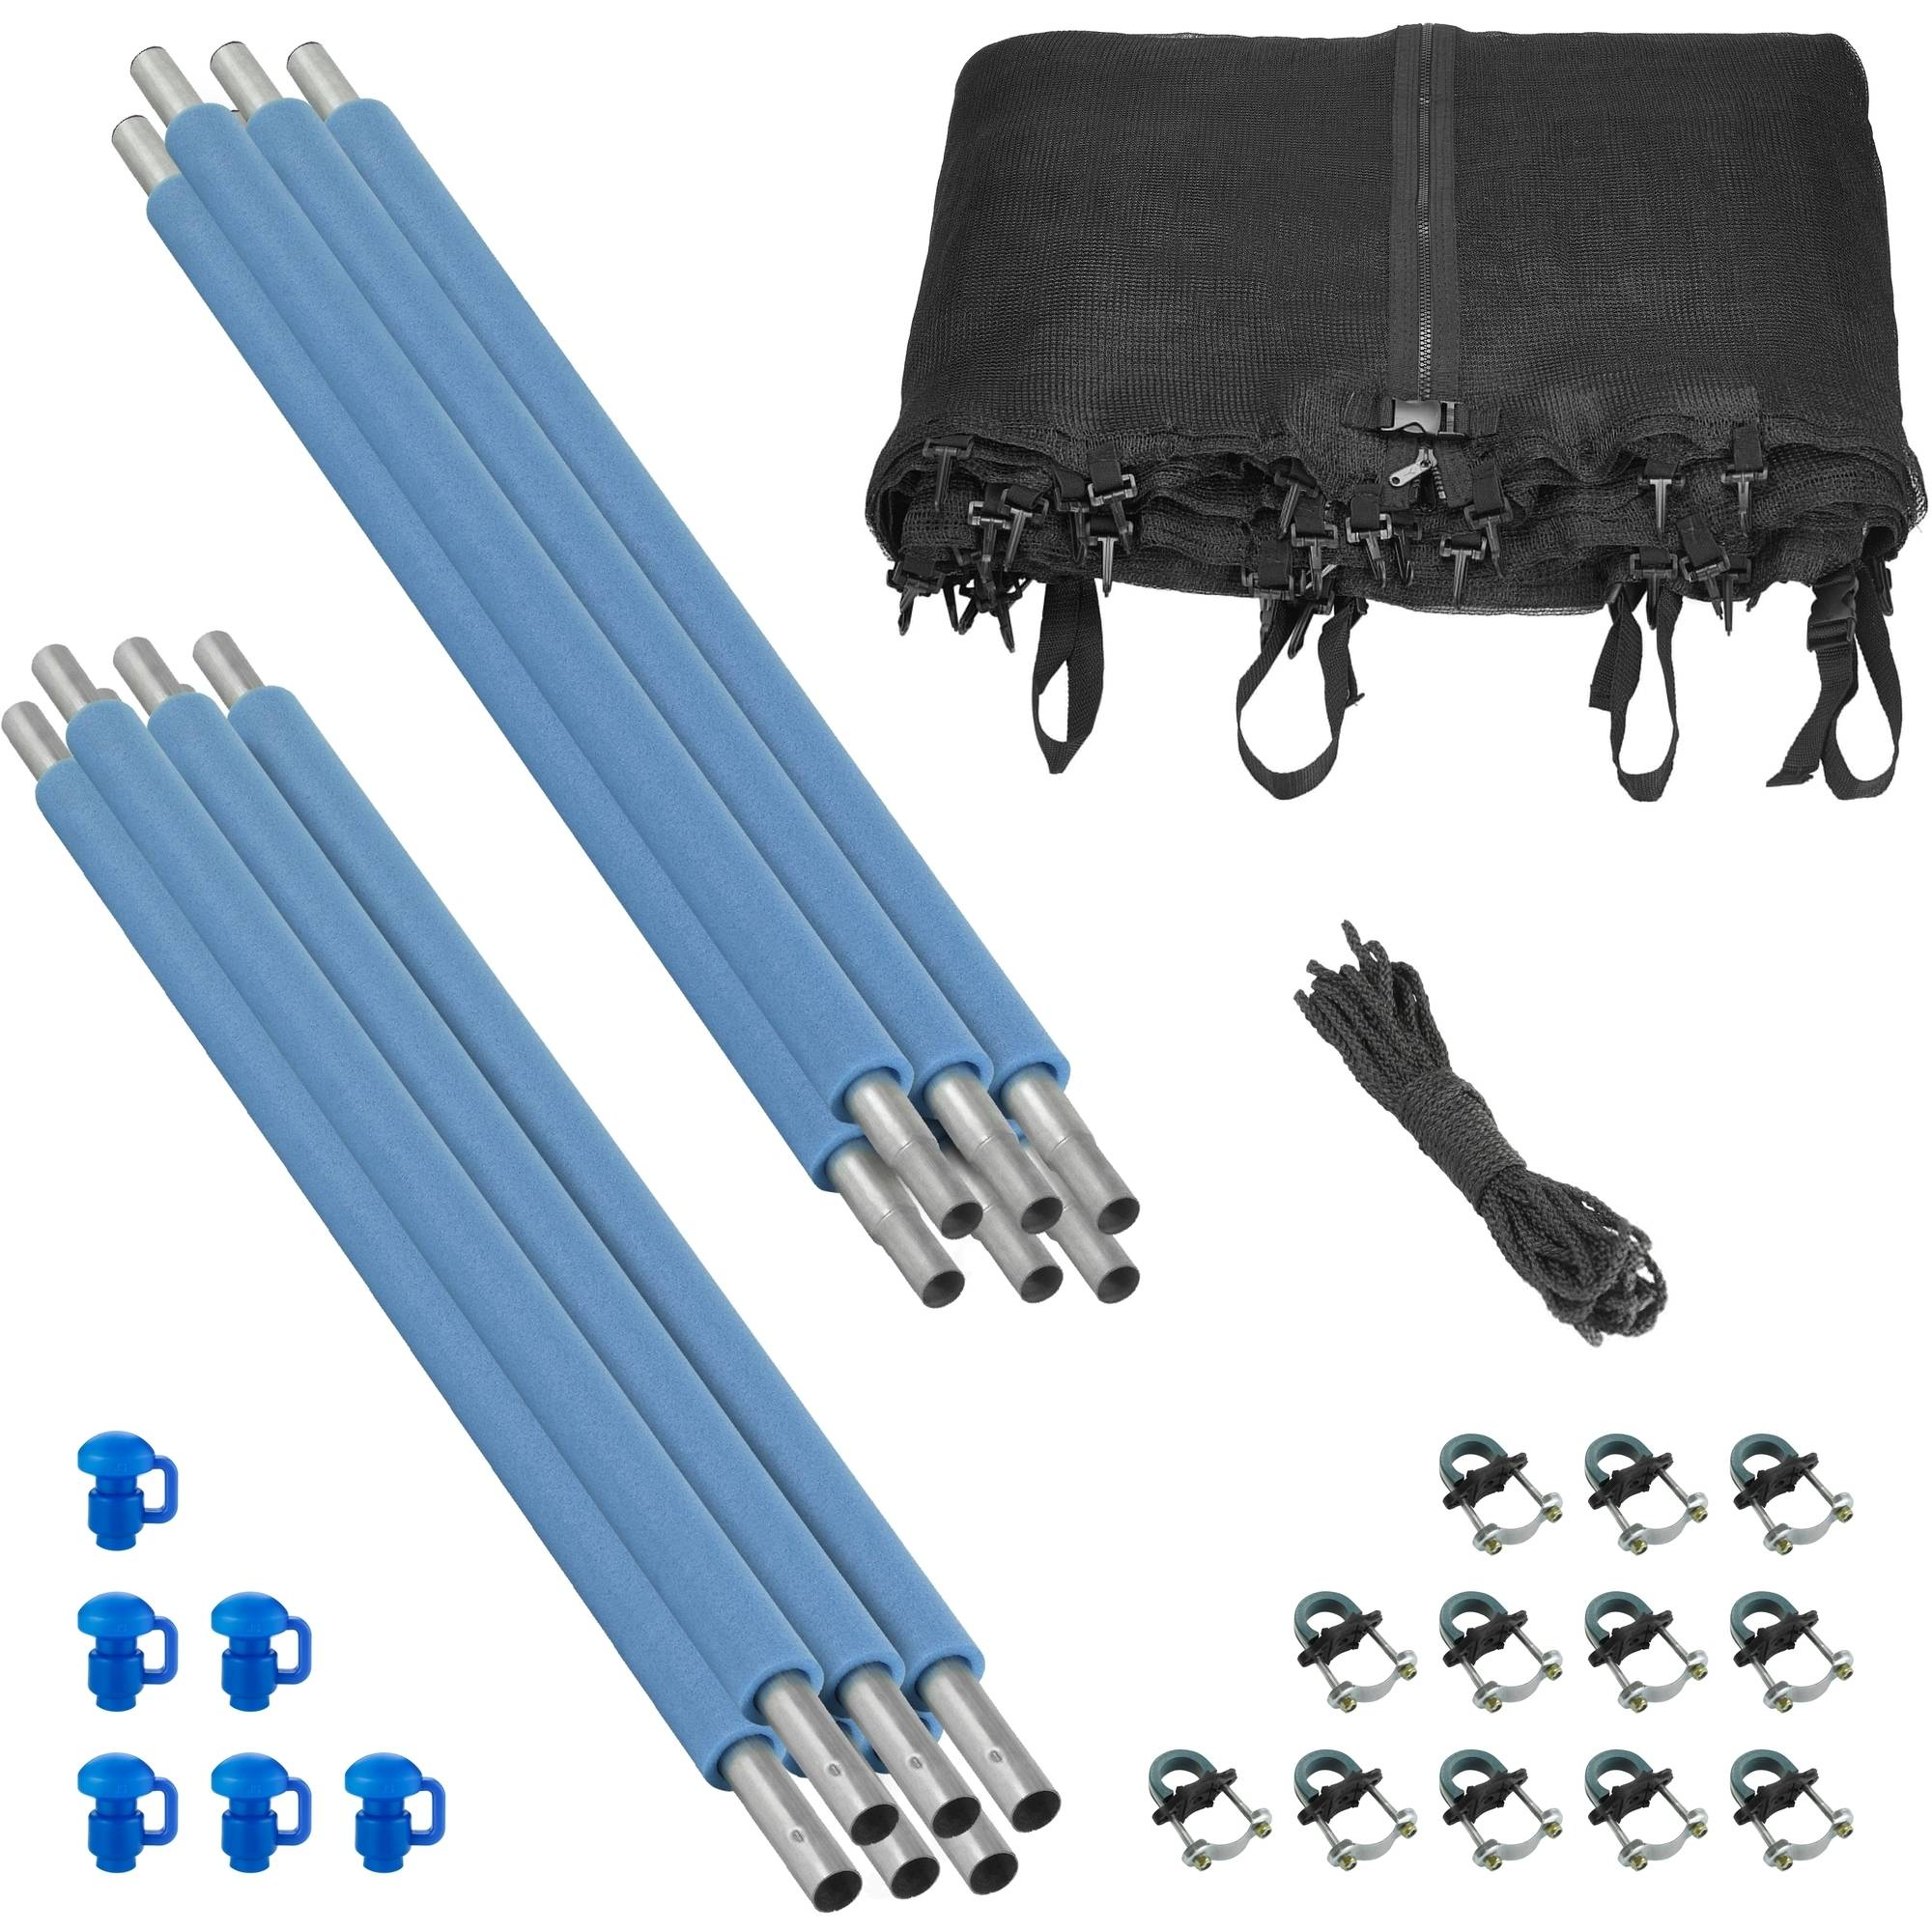 Trampoline Enclosure Set, to fit 12 FT. Round Frames, for 3 or 6 W-Shaped Legs -Set Includes: Net, Poles & Hardware Only